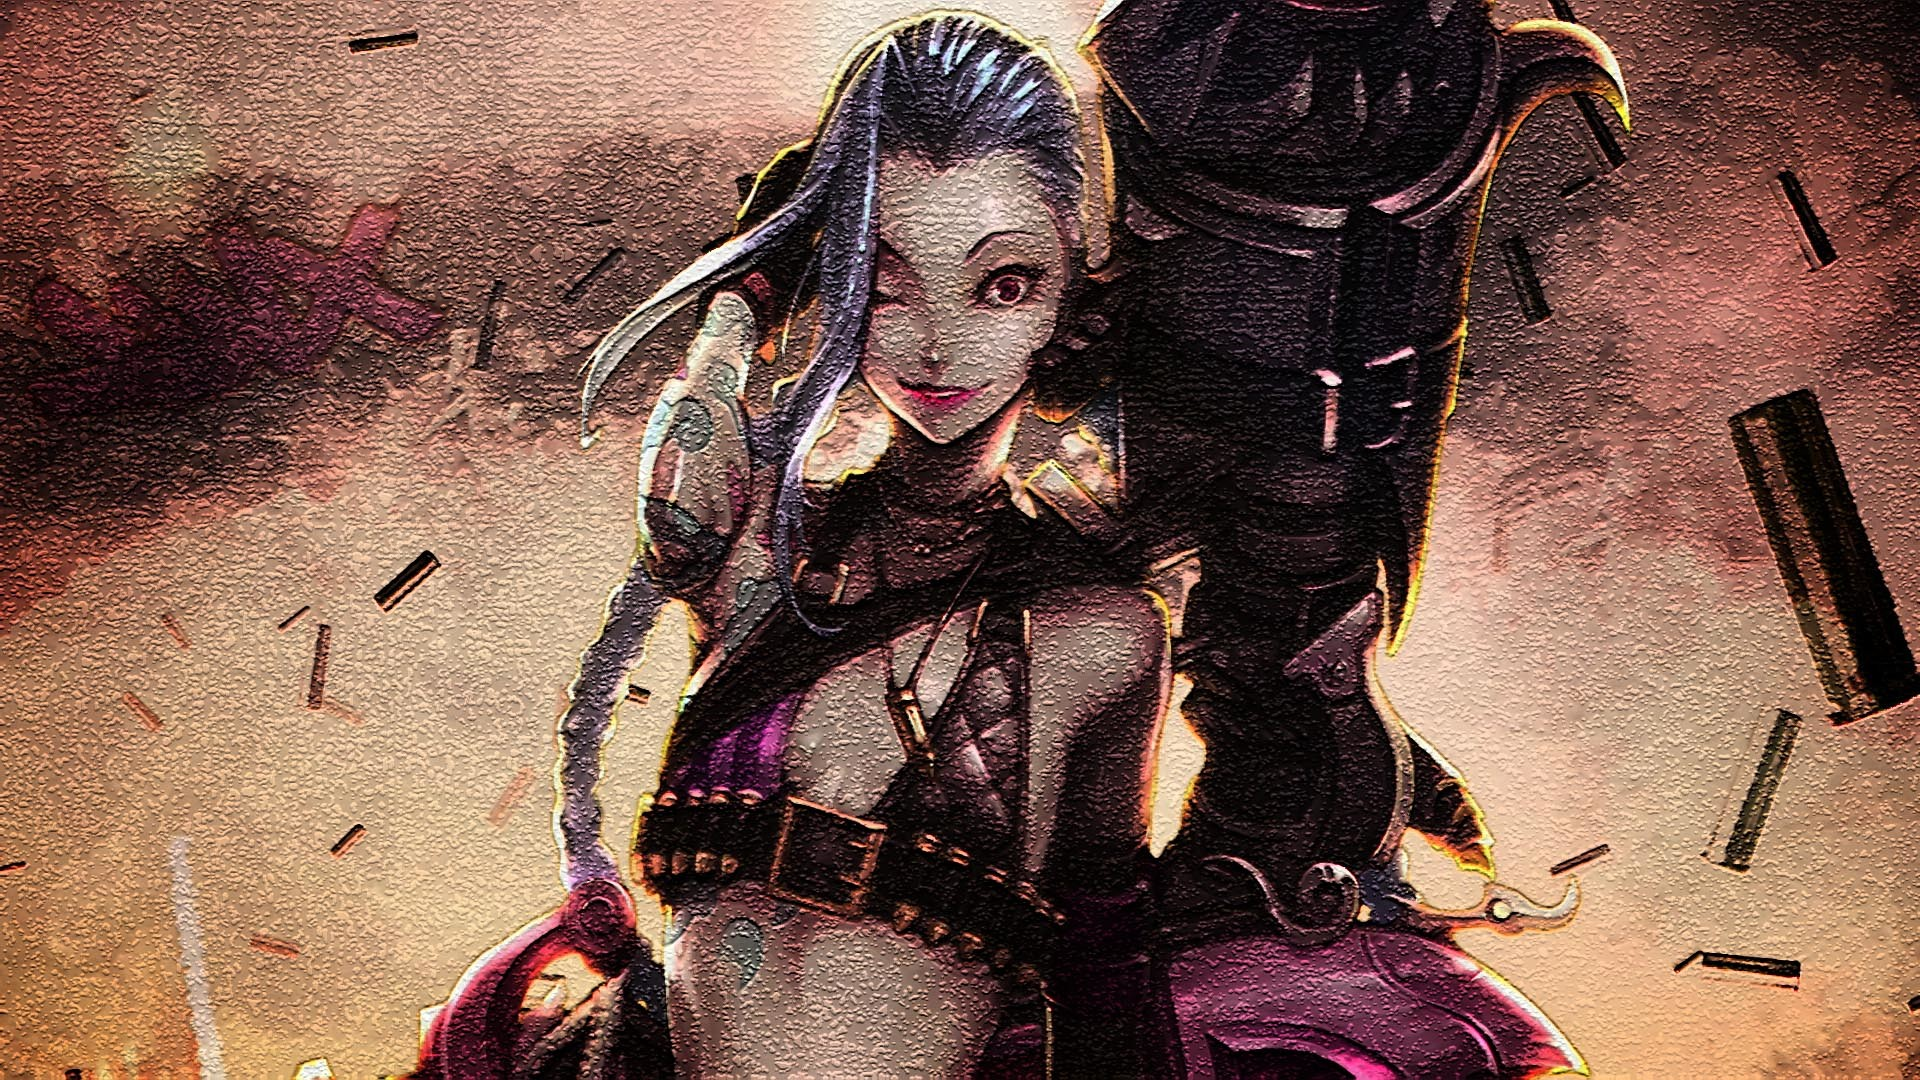 1920x1080 142 Jinx (League Of Legends) HD Wallpapers | Backgrounds - Wallpaper Abyss  - Page 4